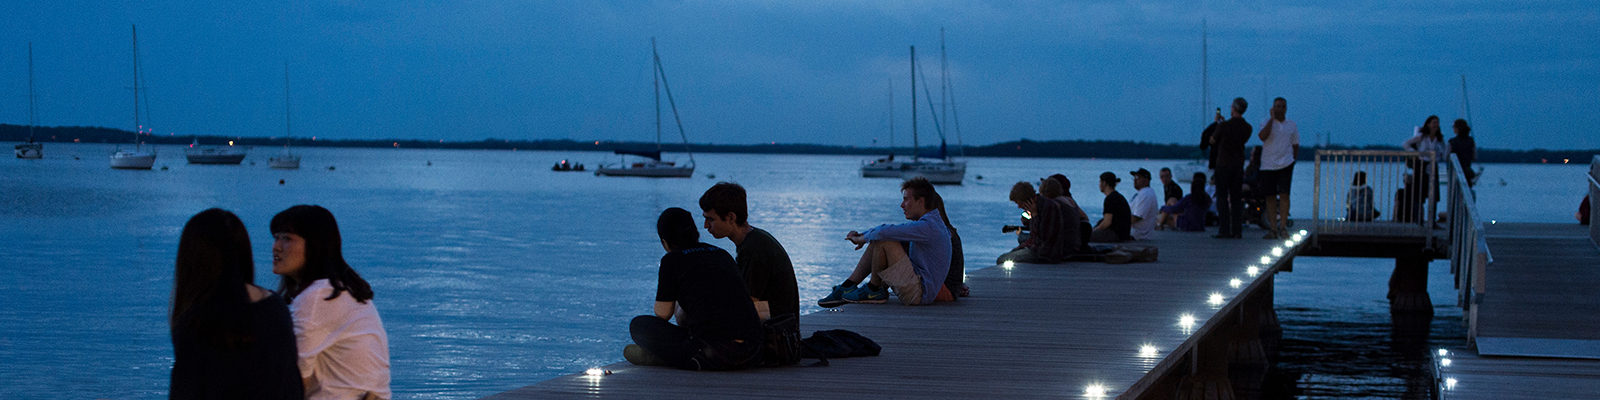 As dusk falls to nighttime, people relax on the Goodspeed Family Pier and take in a post-sunset view of the Memorial Union Terrace and Lake Mendota shoreline at the University of Wisconsin-Madison during a summer evening on June 14, 2014. (Photo by Jeff Miller/UW-Madison)